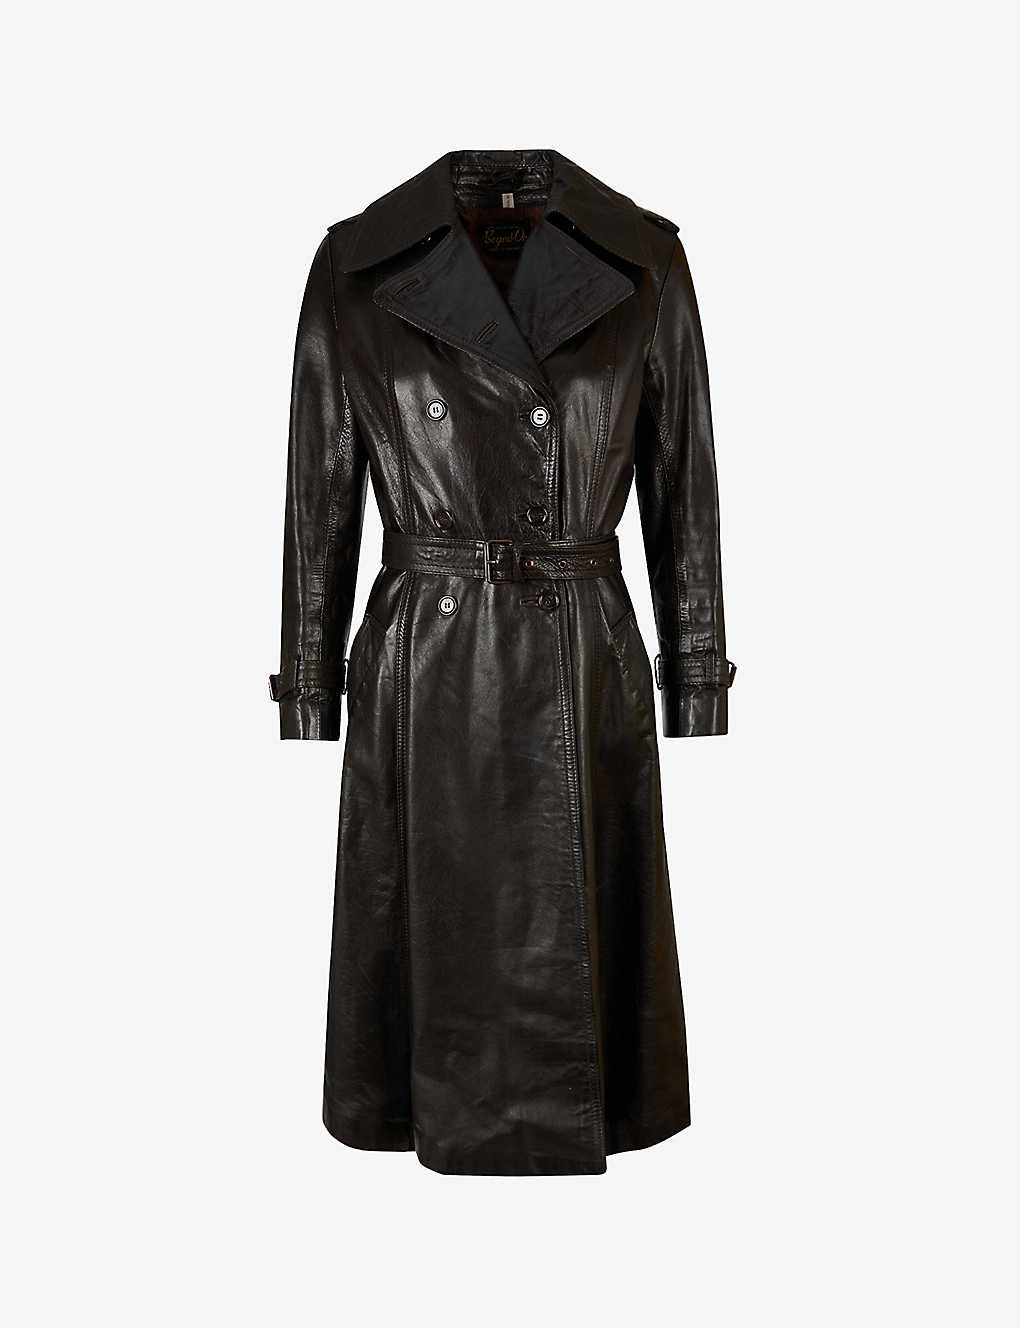 Pre-loved Beged Or 1970s leather coat